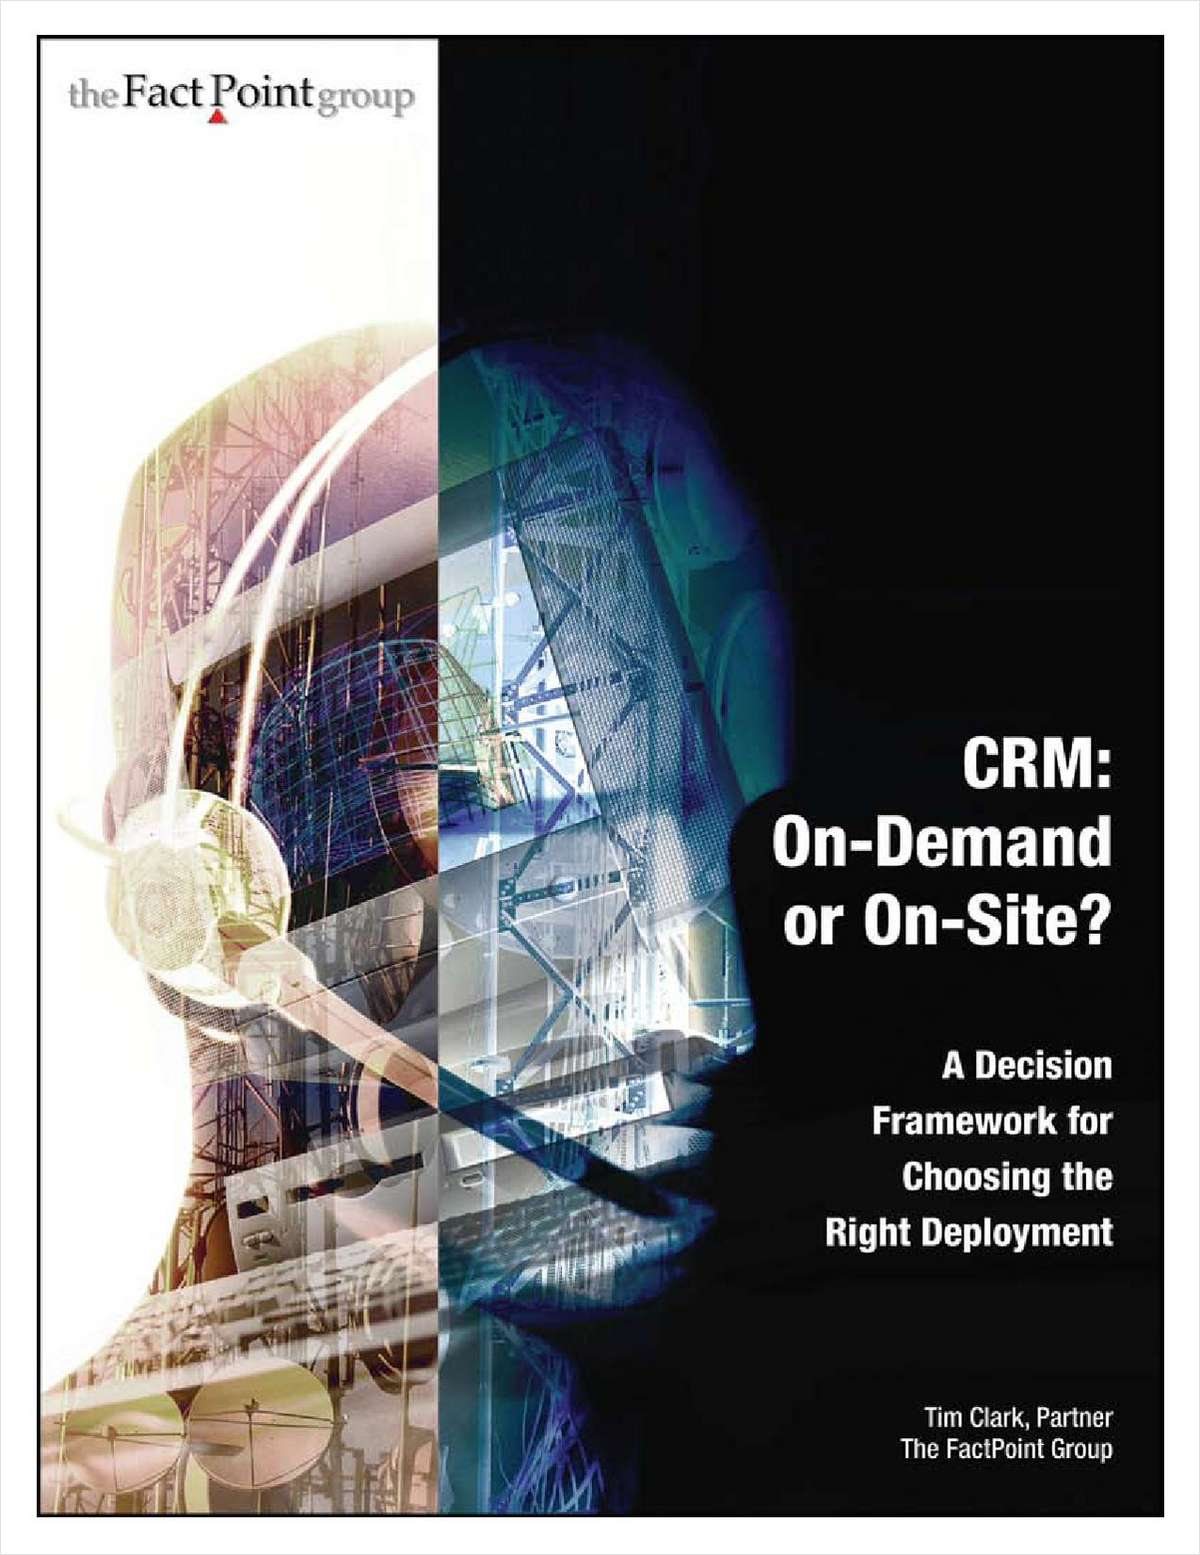 CRM On-Site or On-Demand? Choose the right deployment option